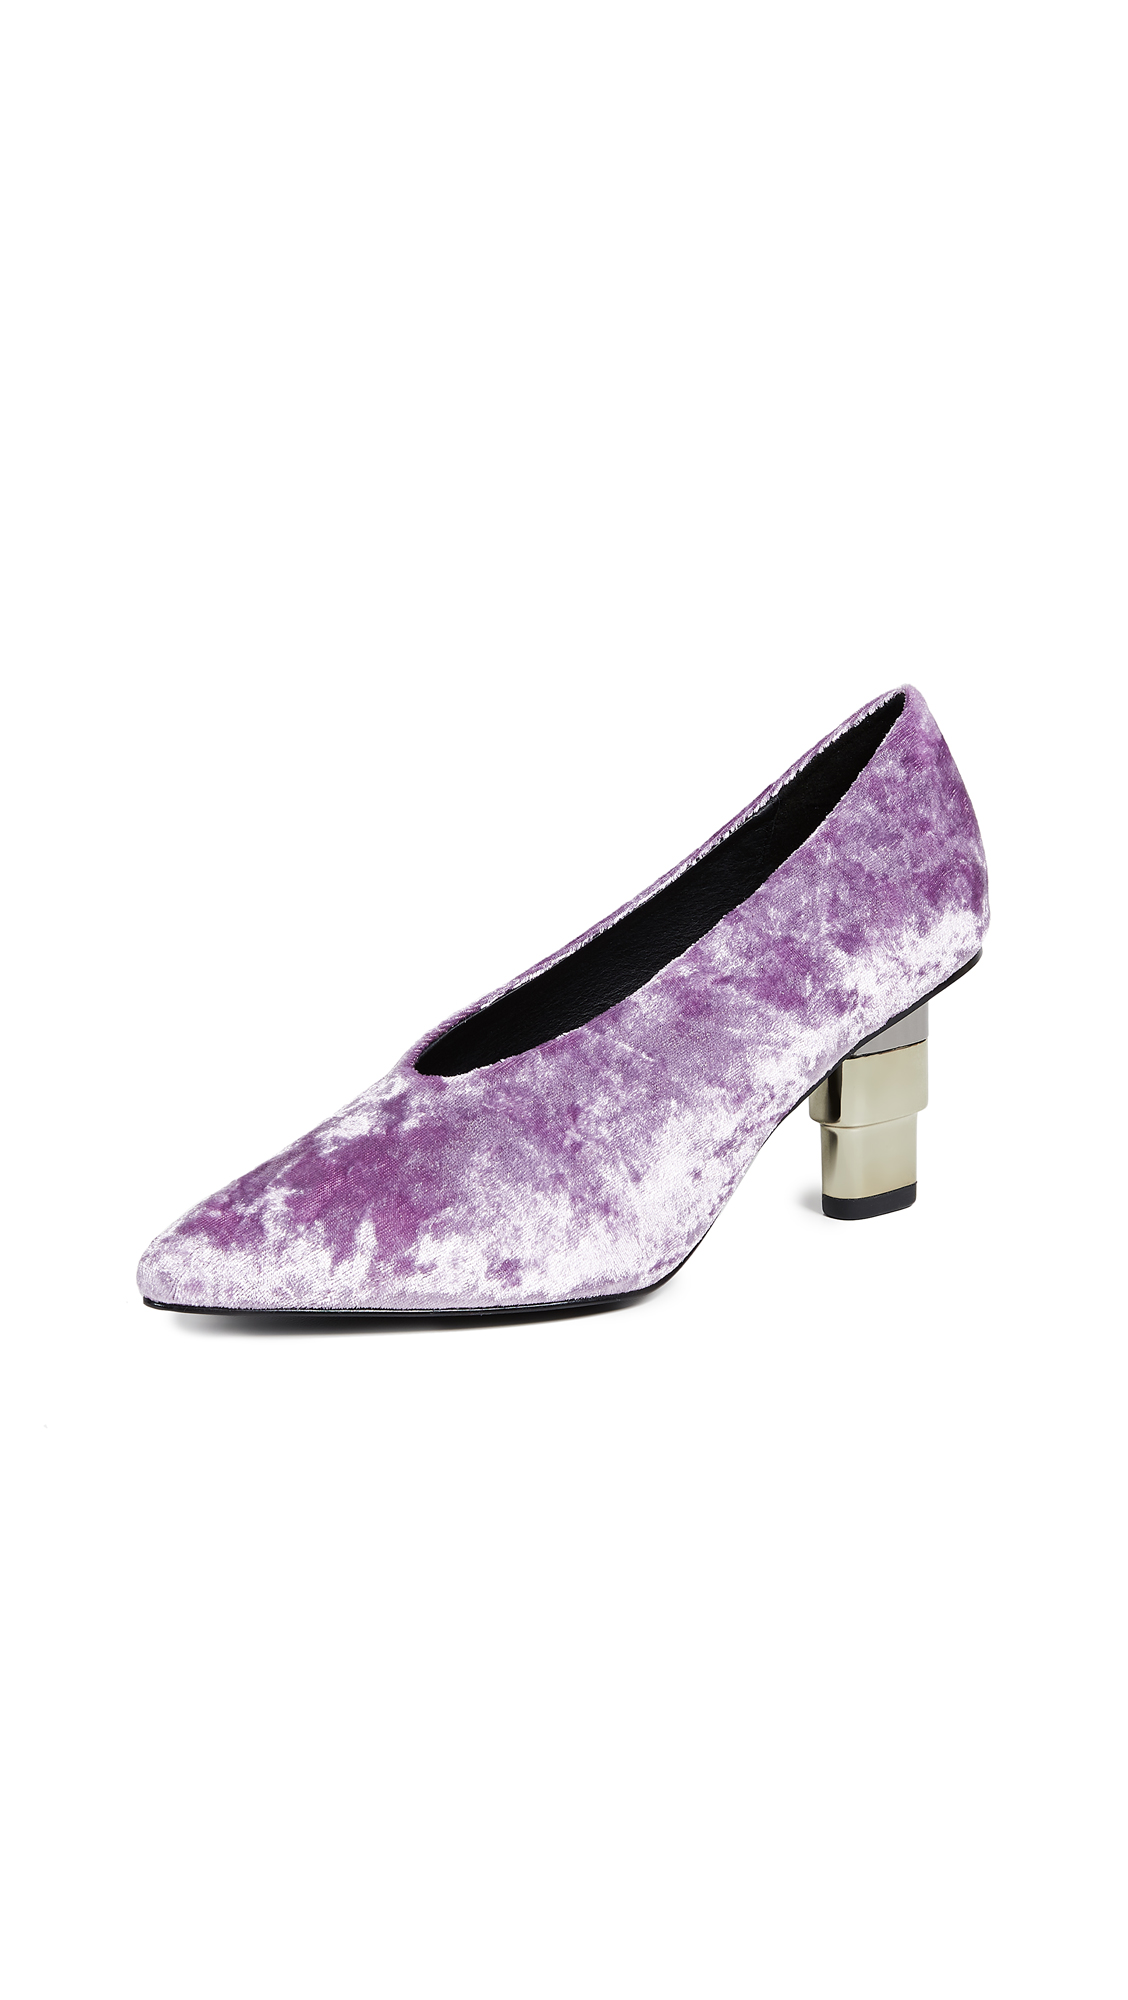 JAGGAR V Cut Pumps - Mauve